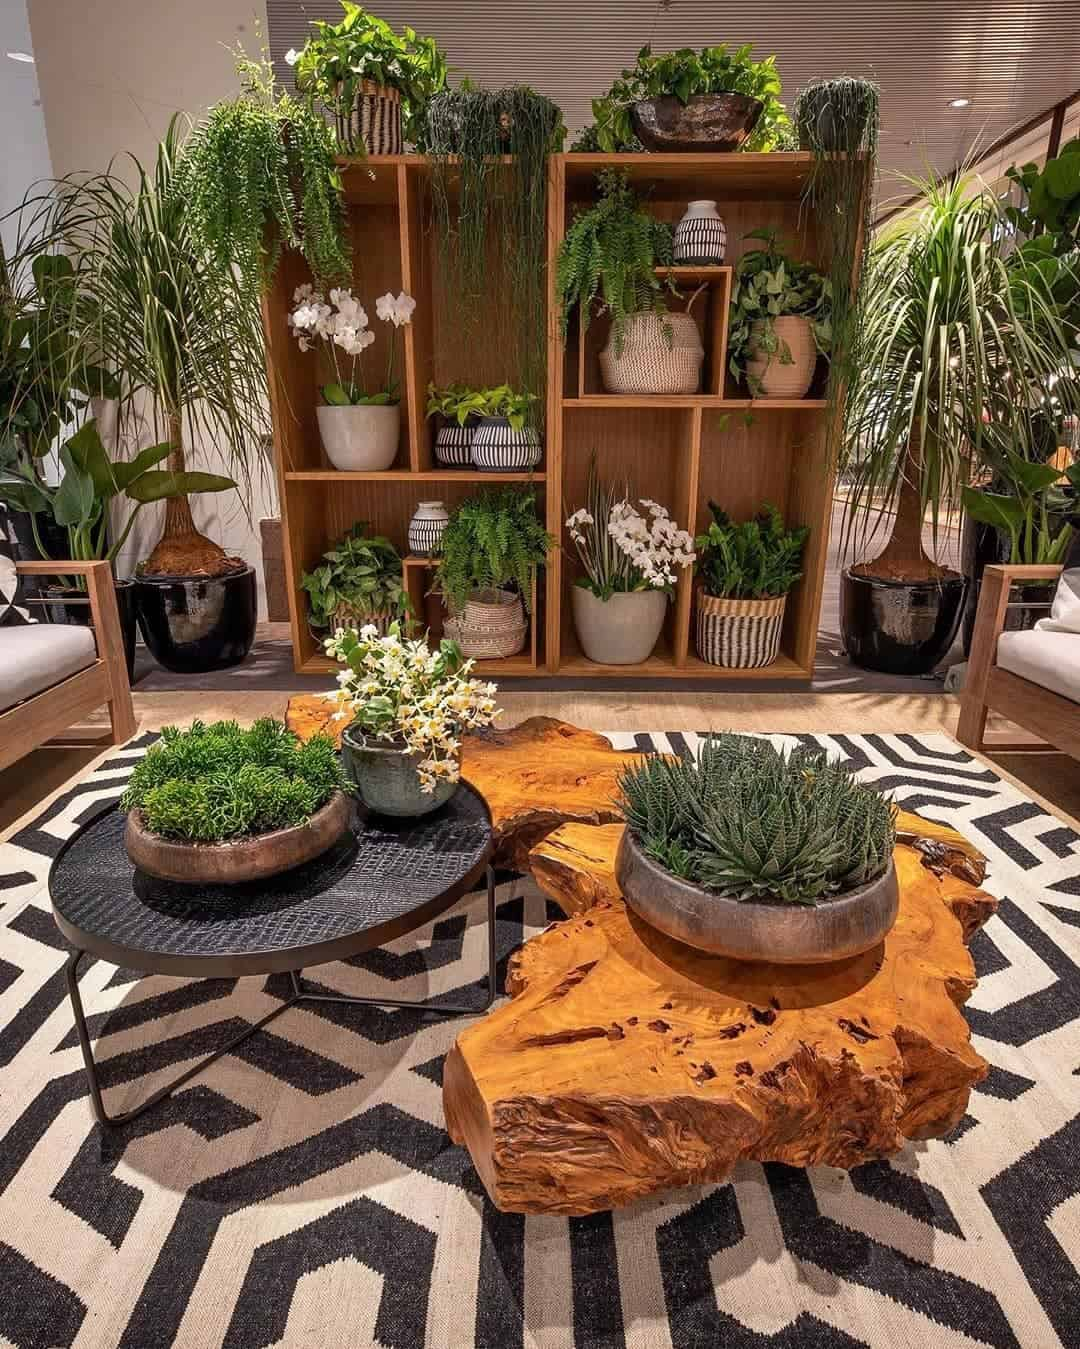 Landscape Design 2020: Fashion Trends 2020 News From Leading Experts